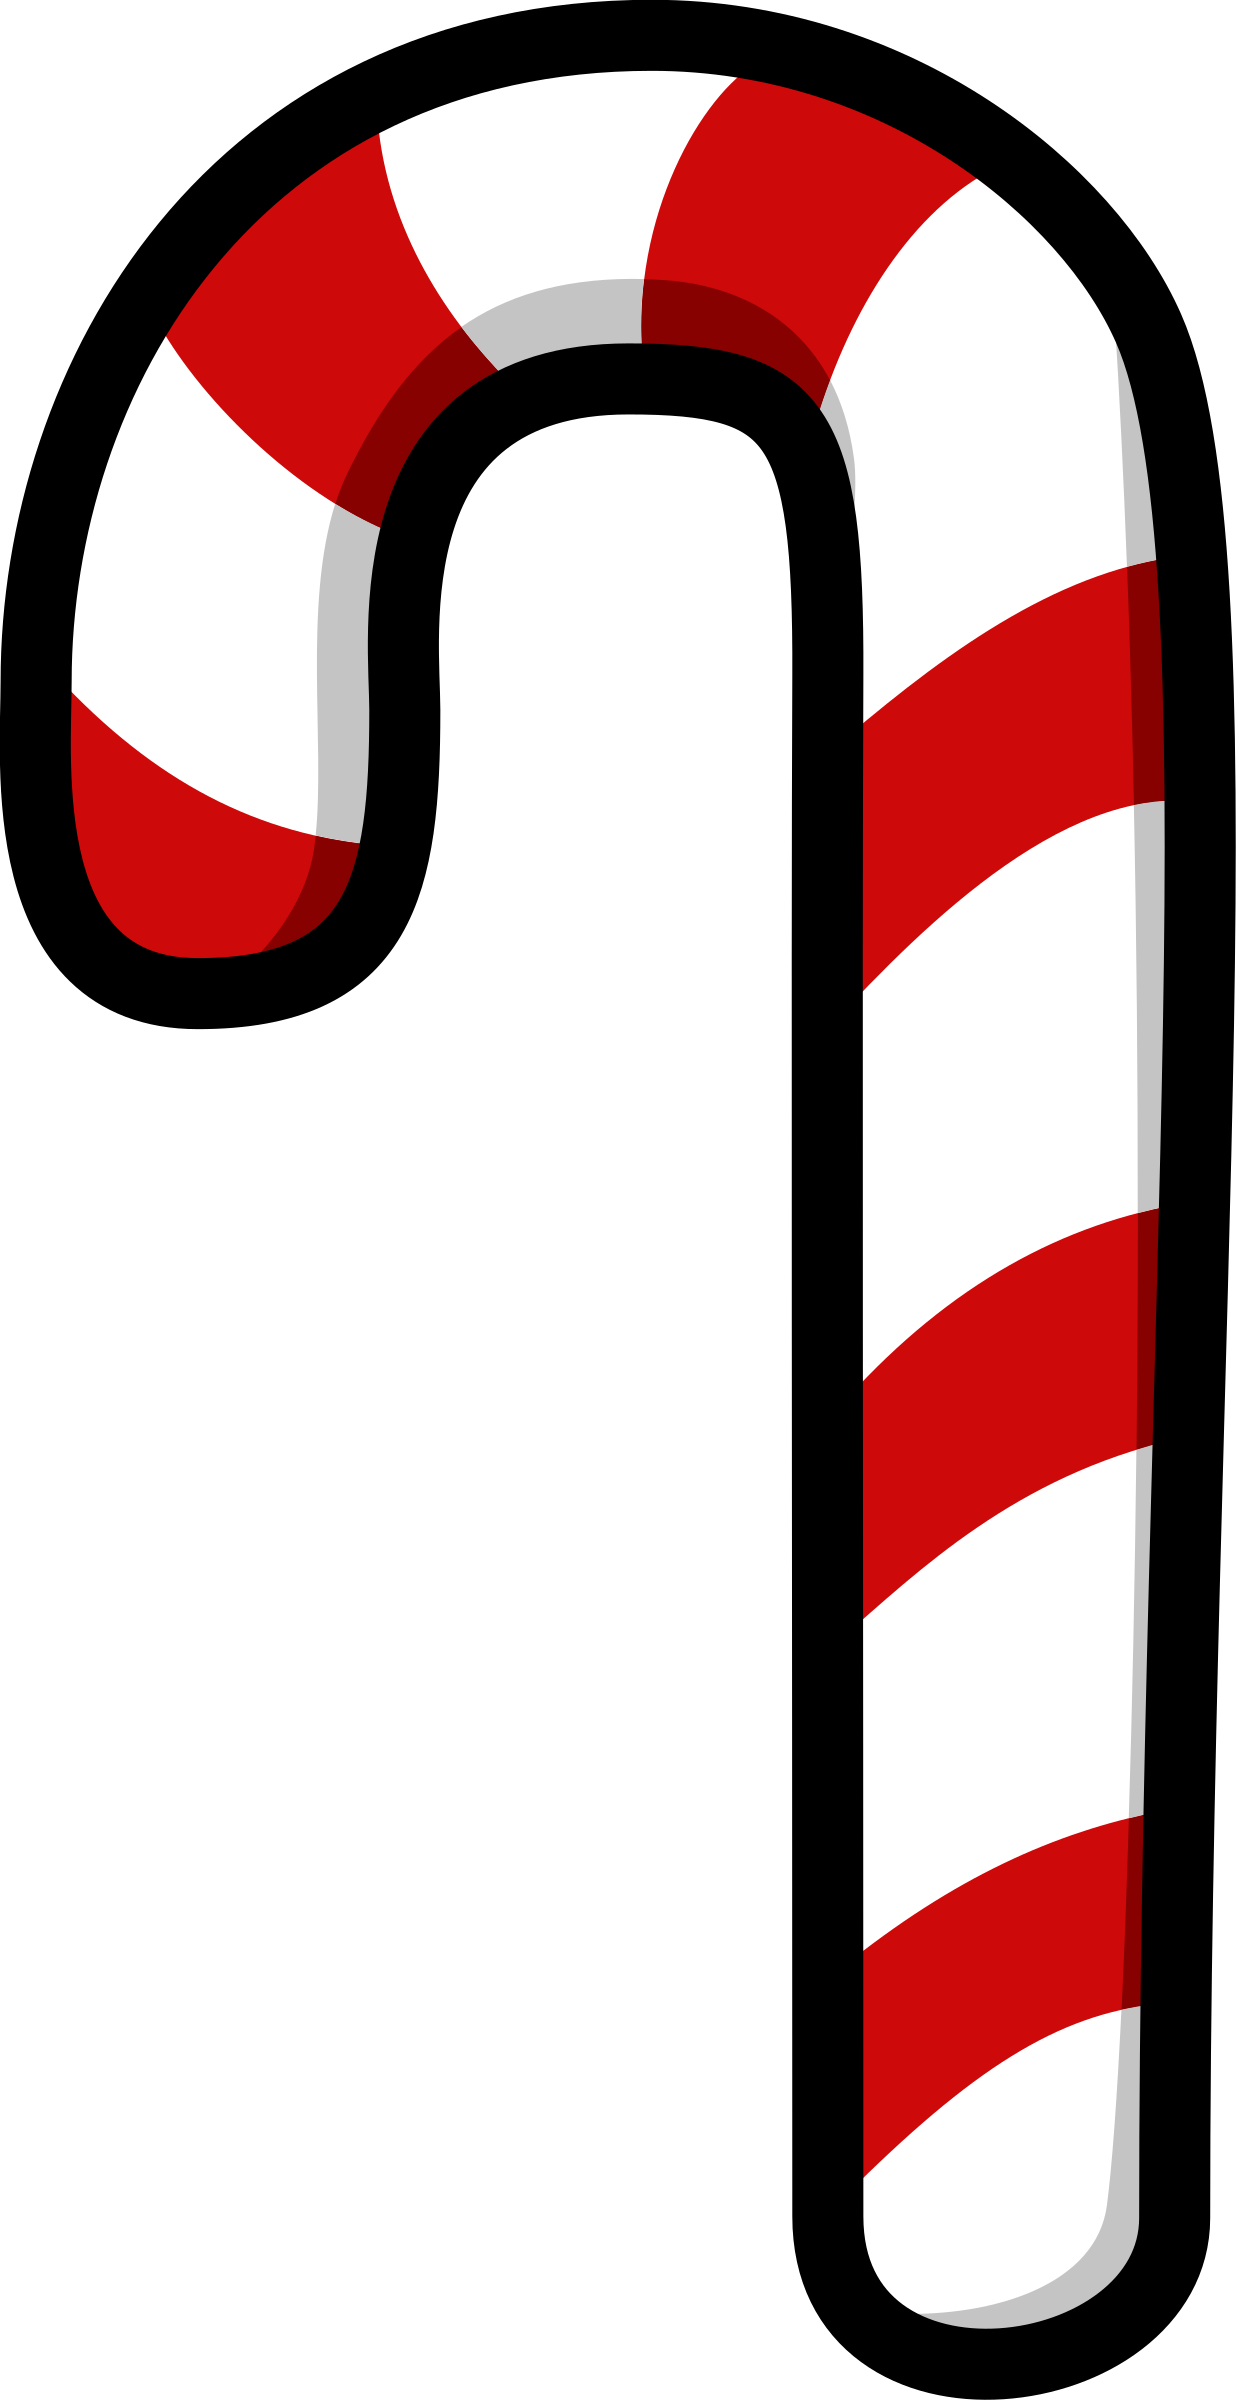 Marbles clipart 4 candy. Cane